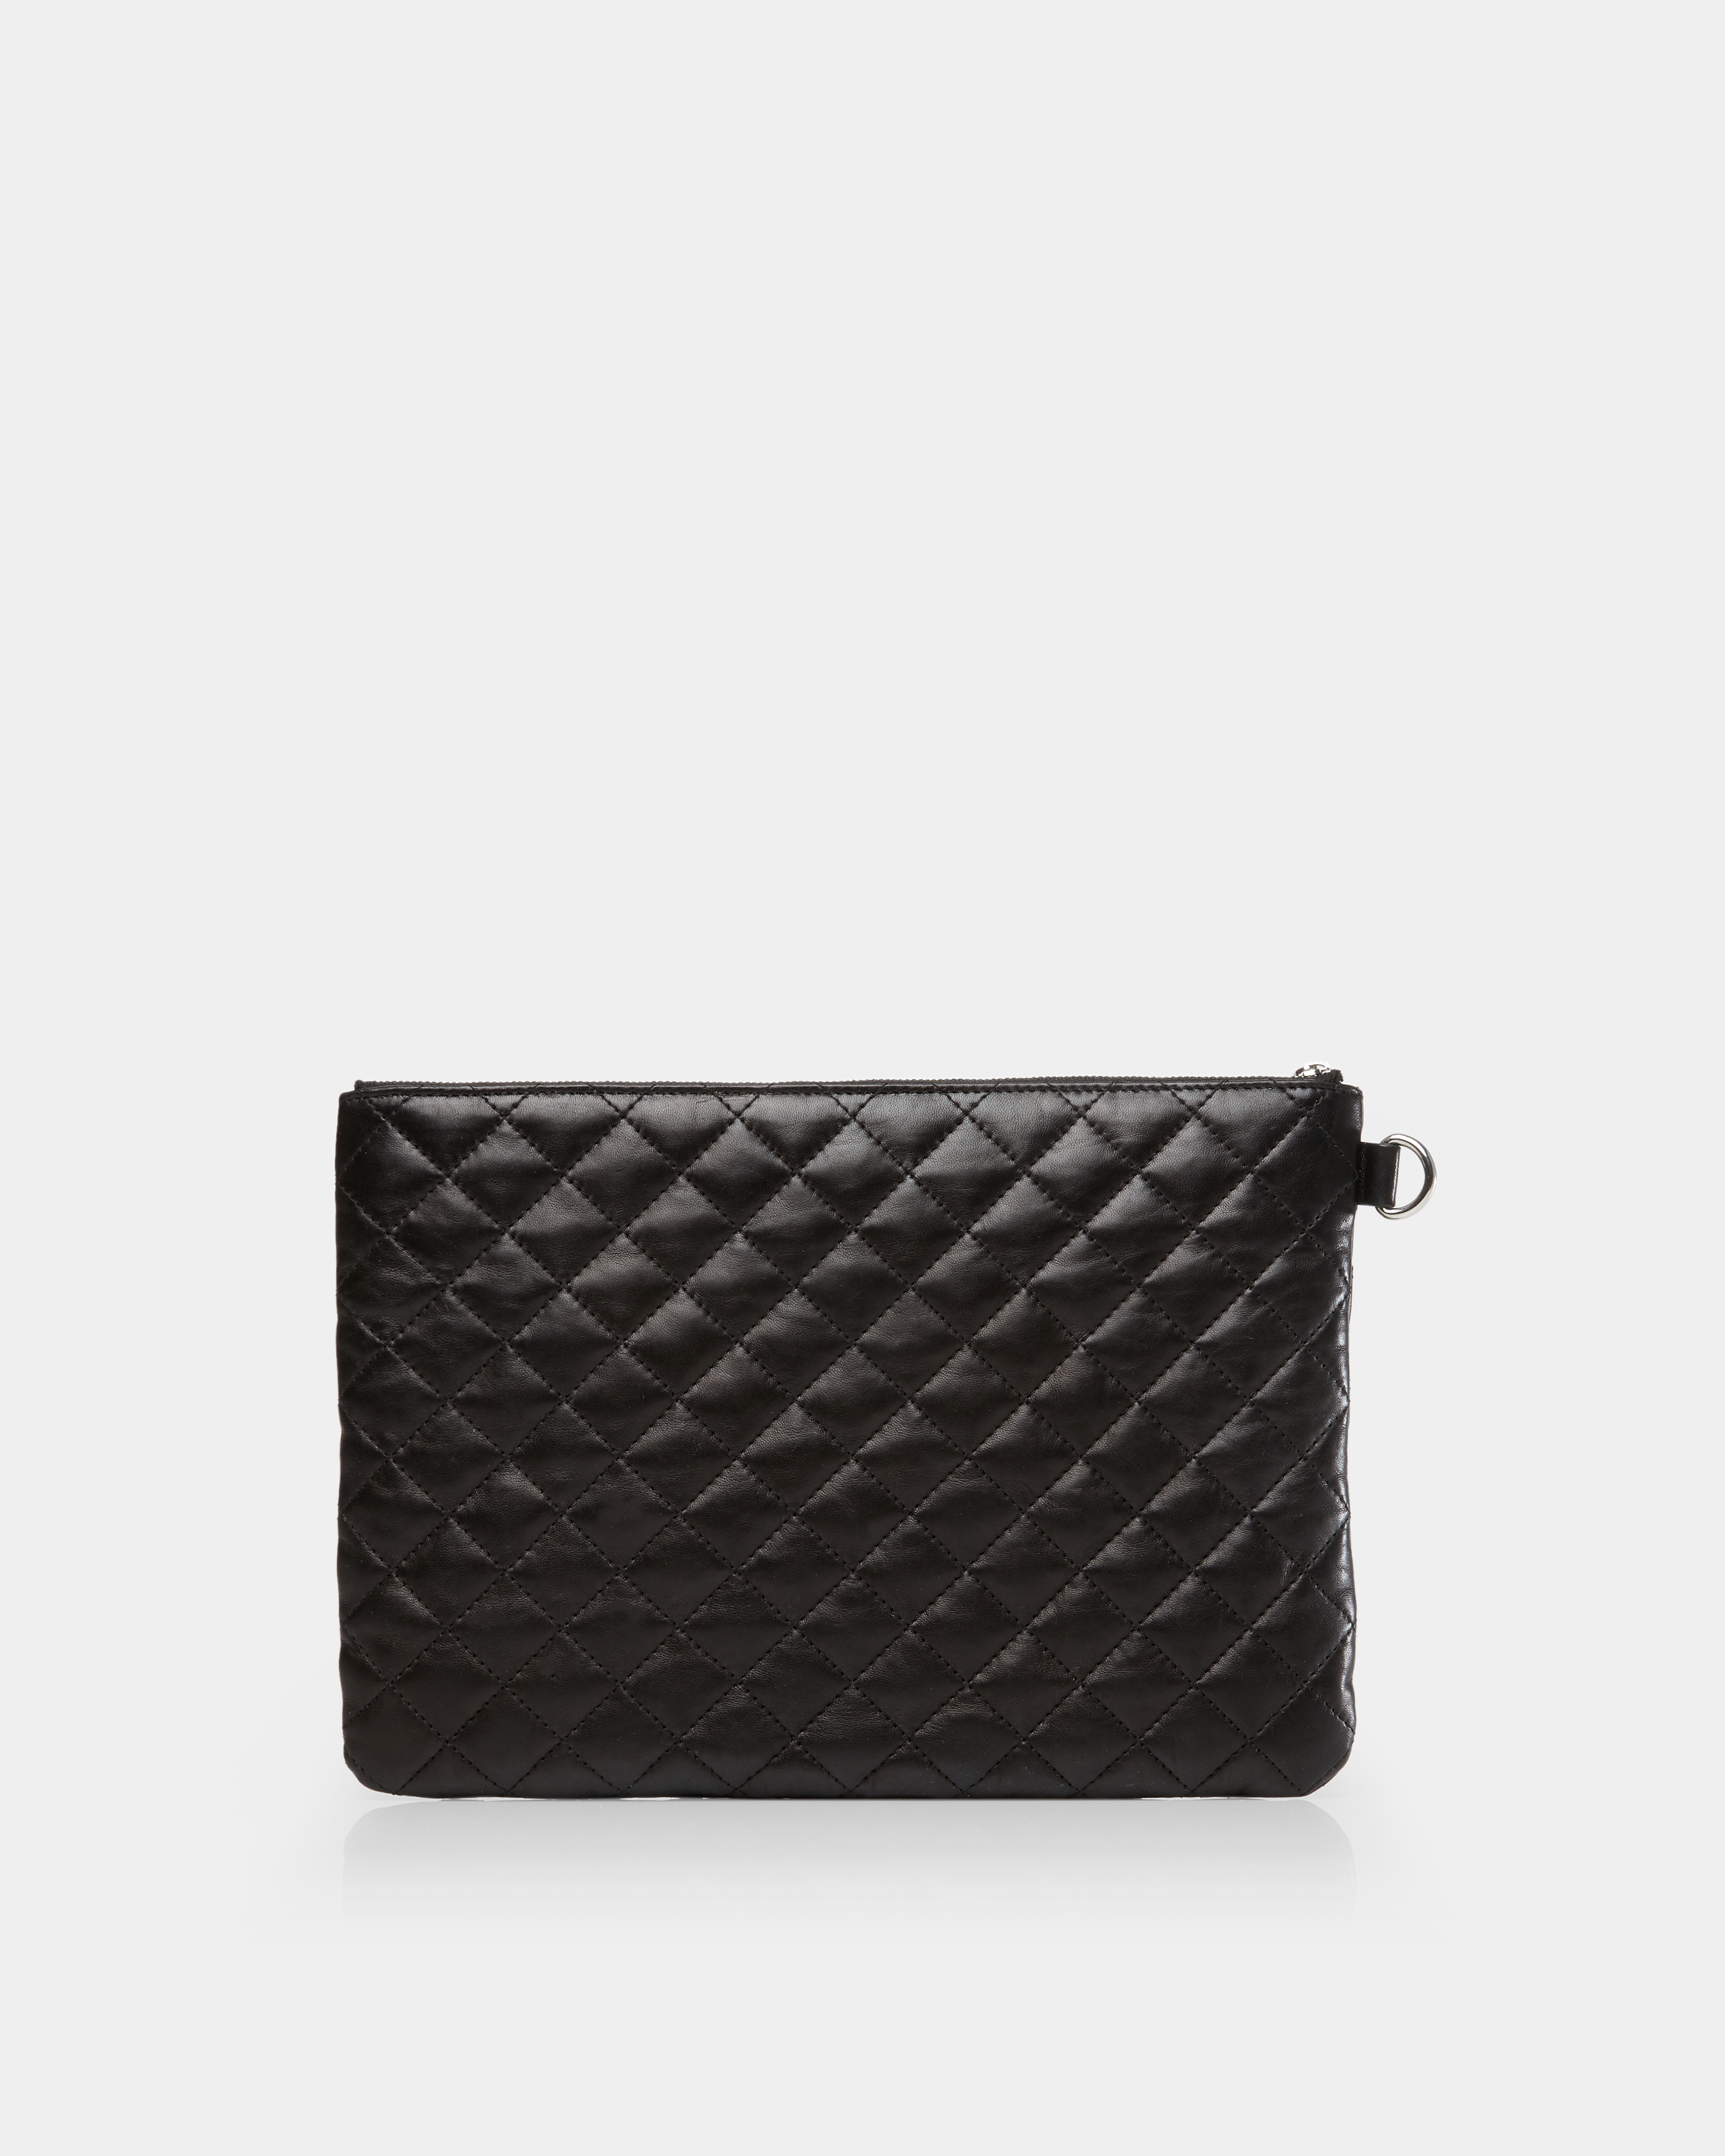 Metro Pouch - Black Quilted Leather (5351153) in color Black Leather